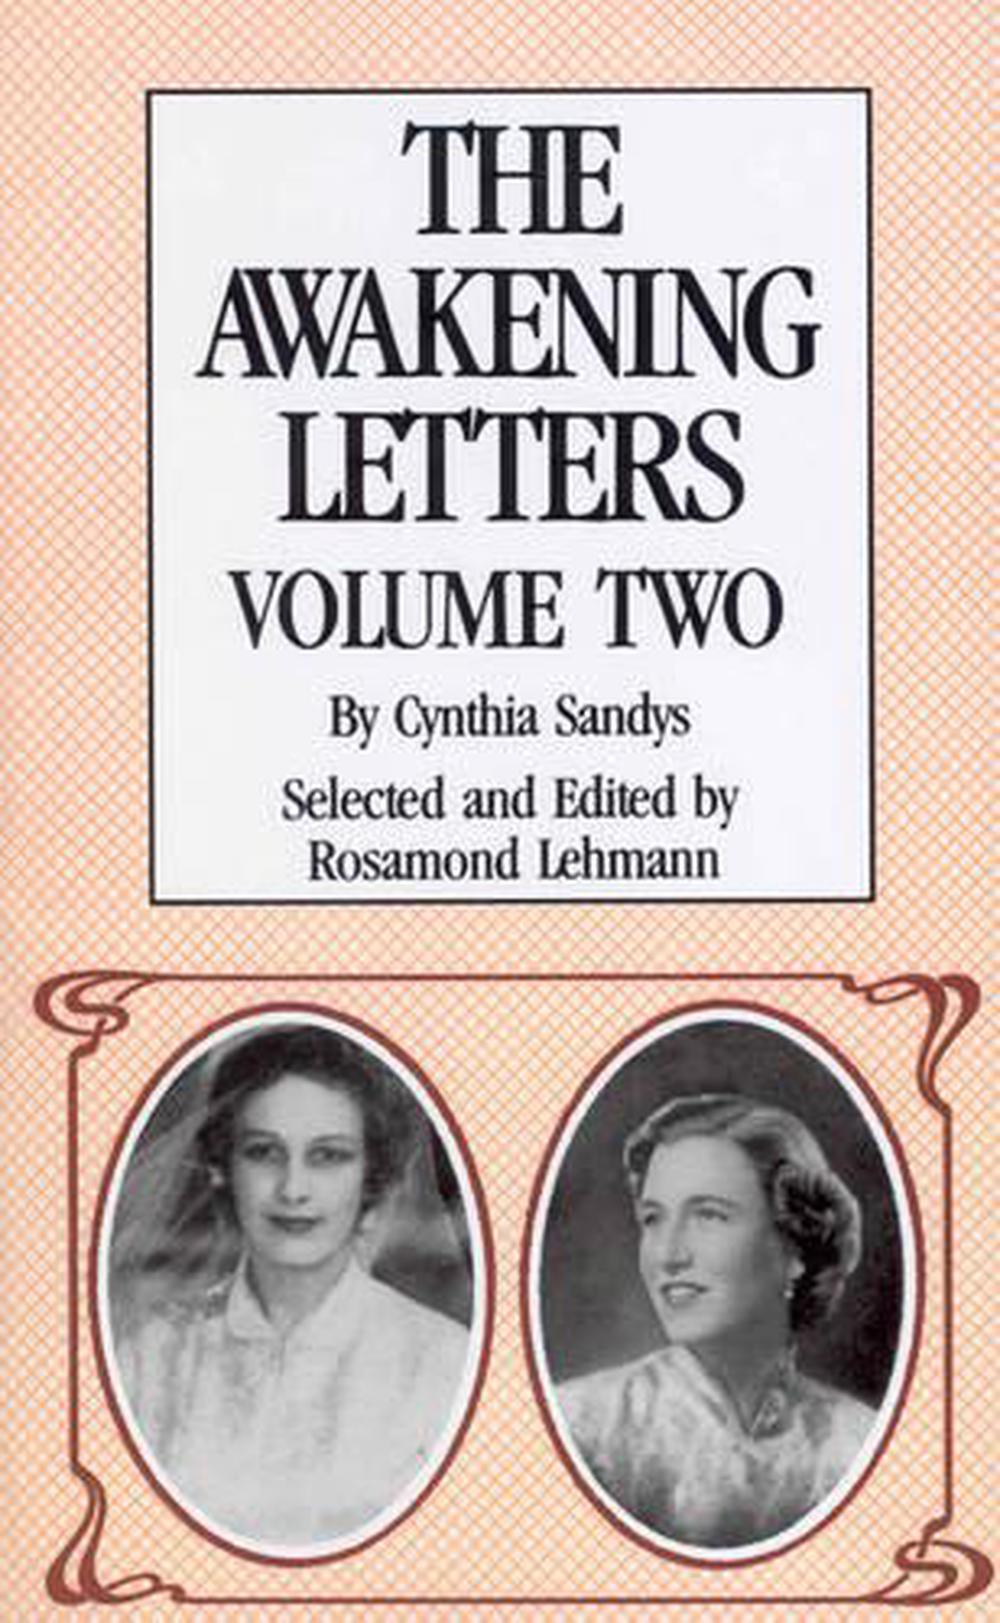 The Awakening Letters Volume Two